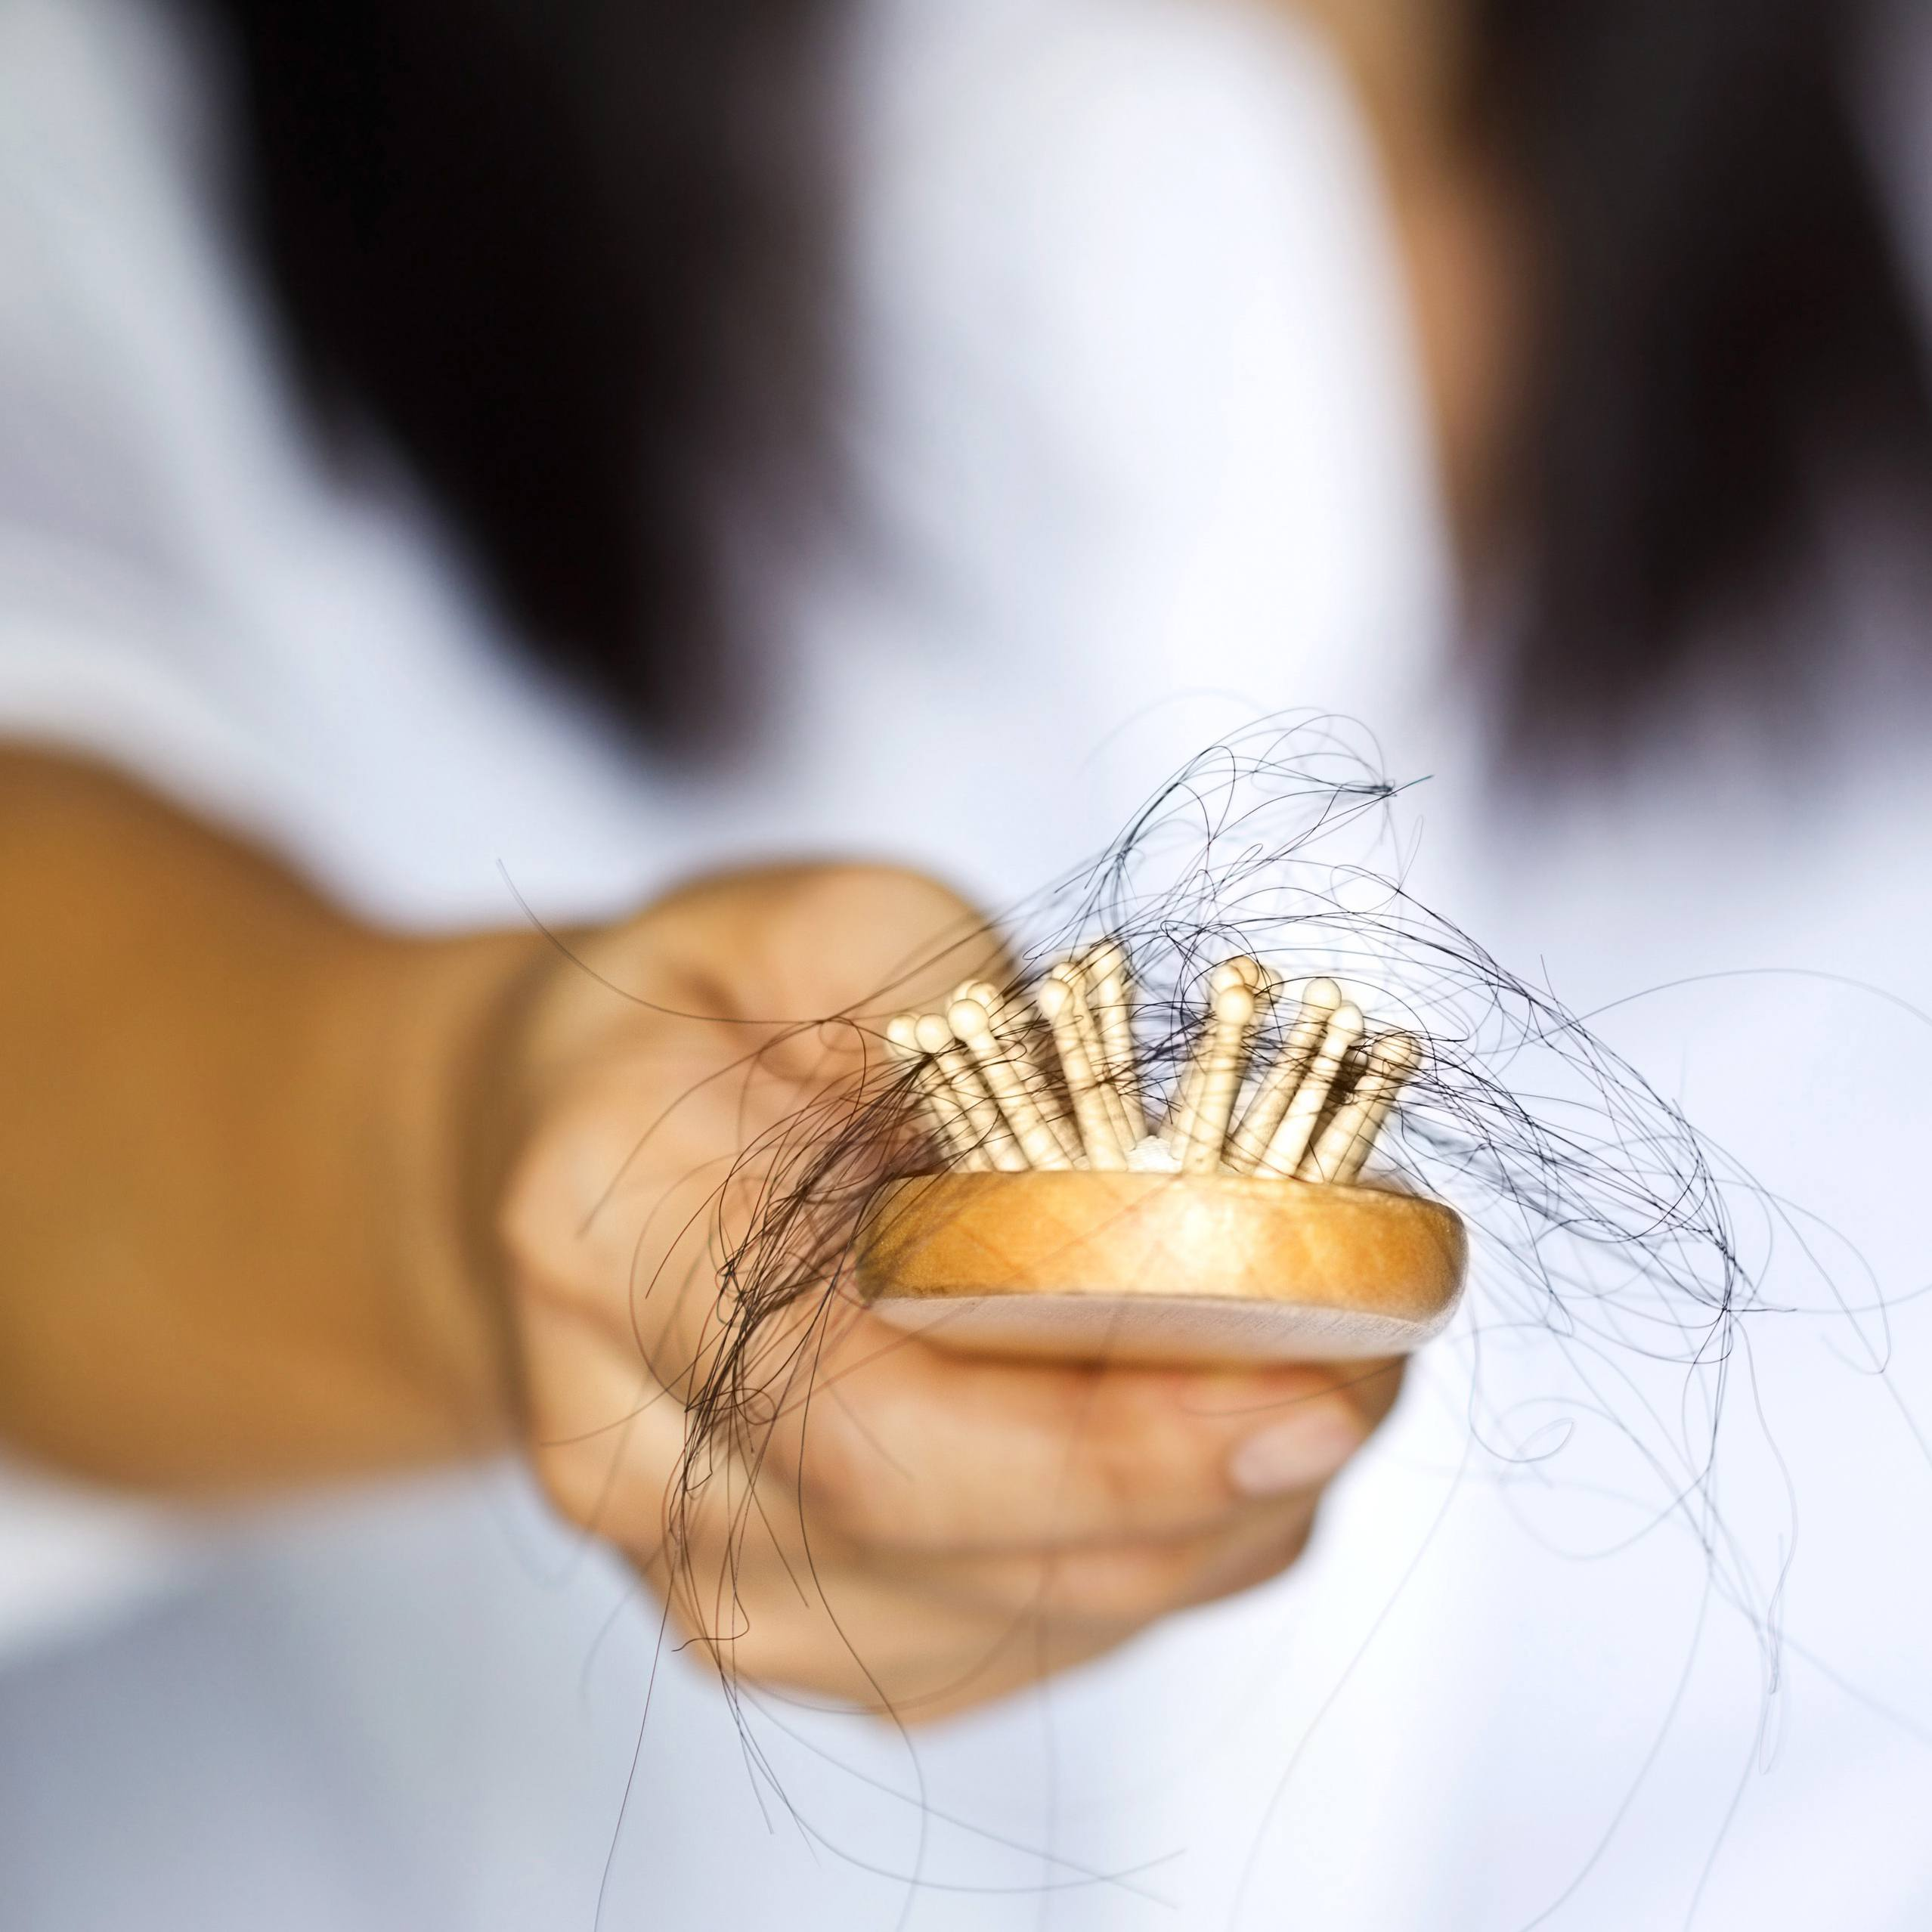 closeup of a woman's hand holding a hairbrush with clumps of hair representing hair loss